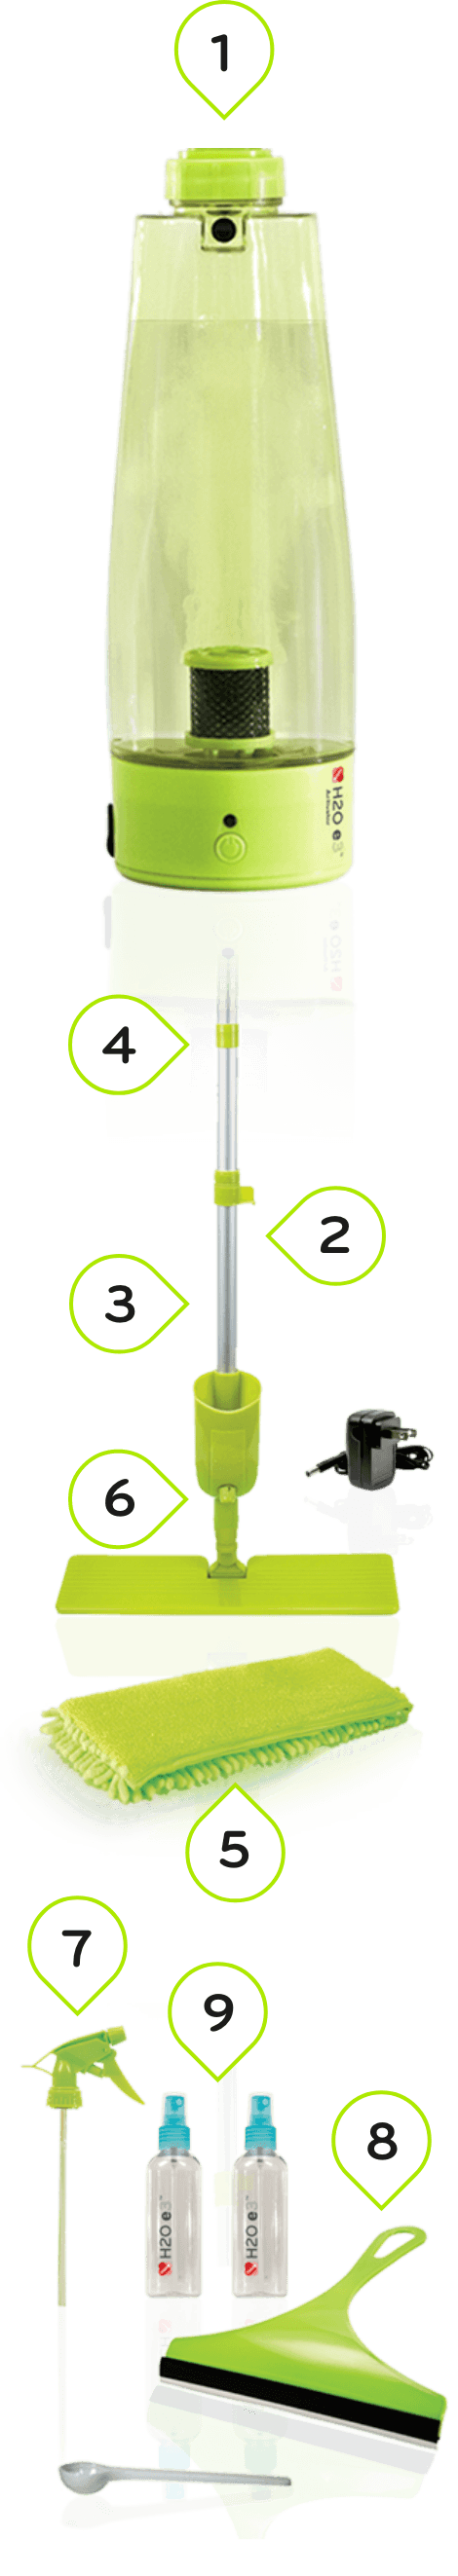 Features of the e3 Cleaning System